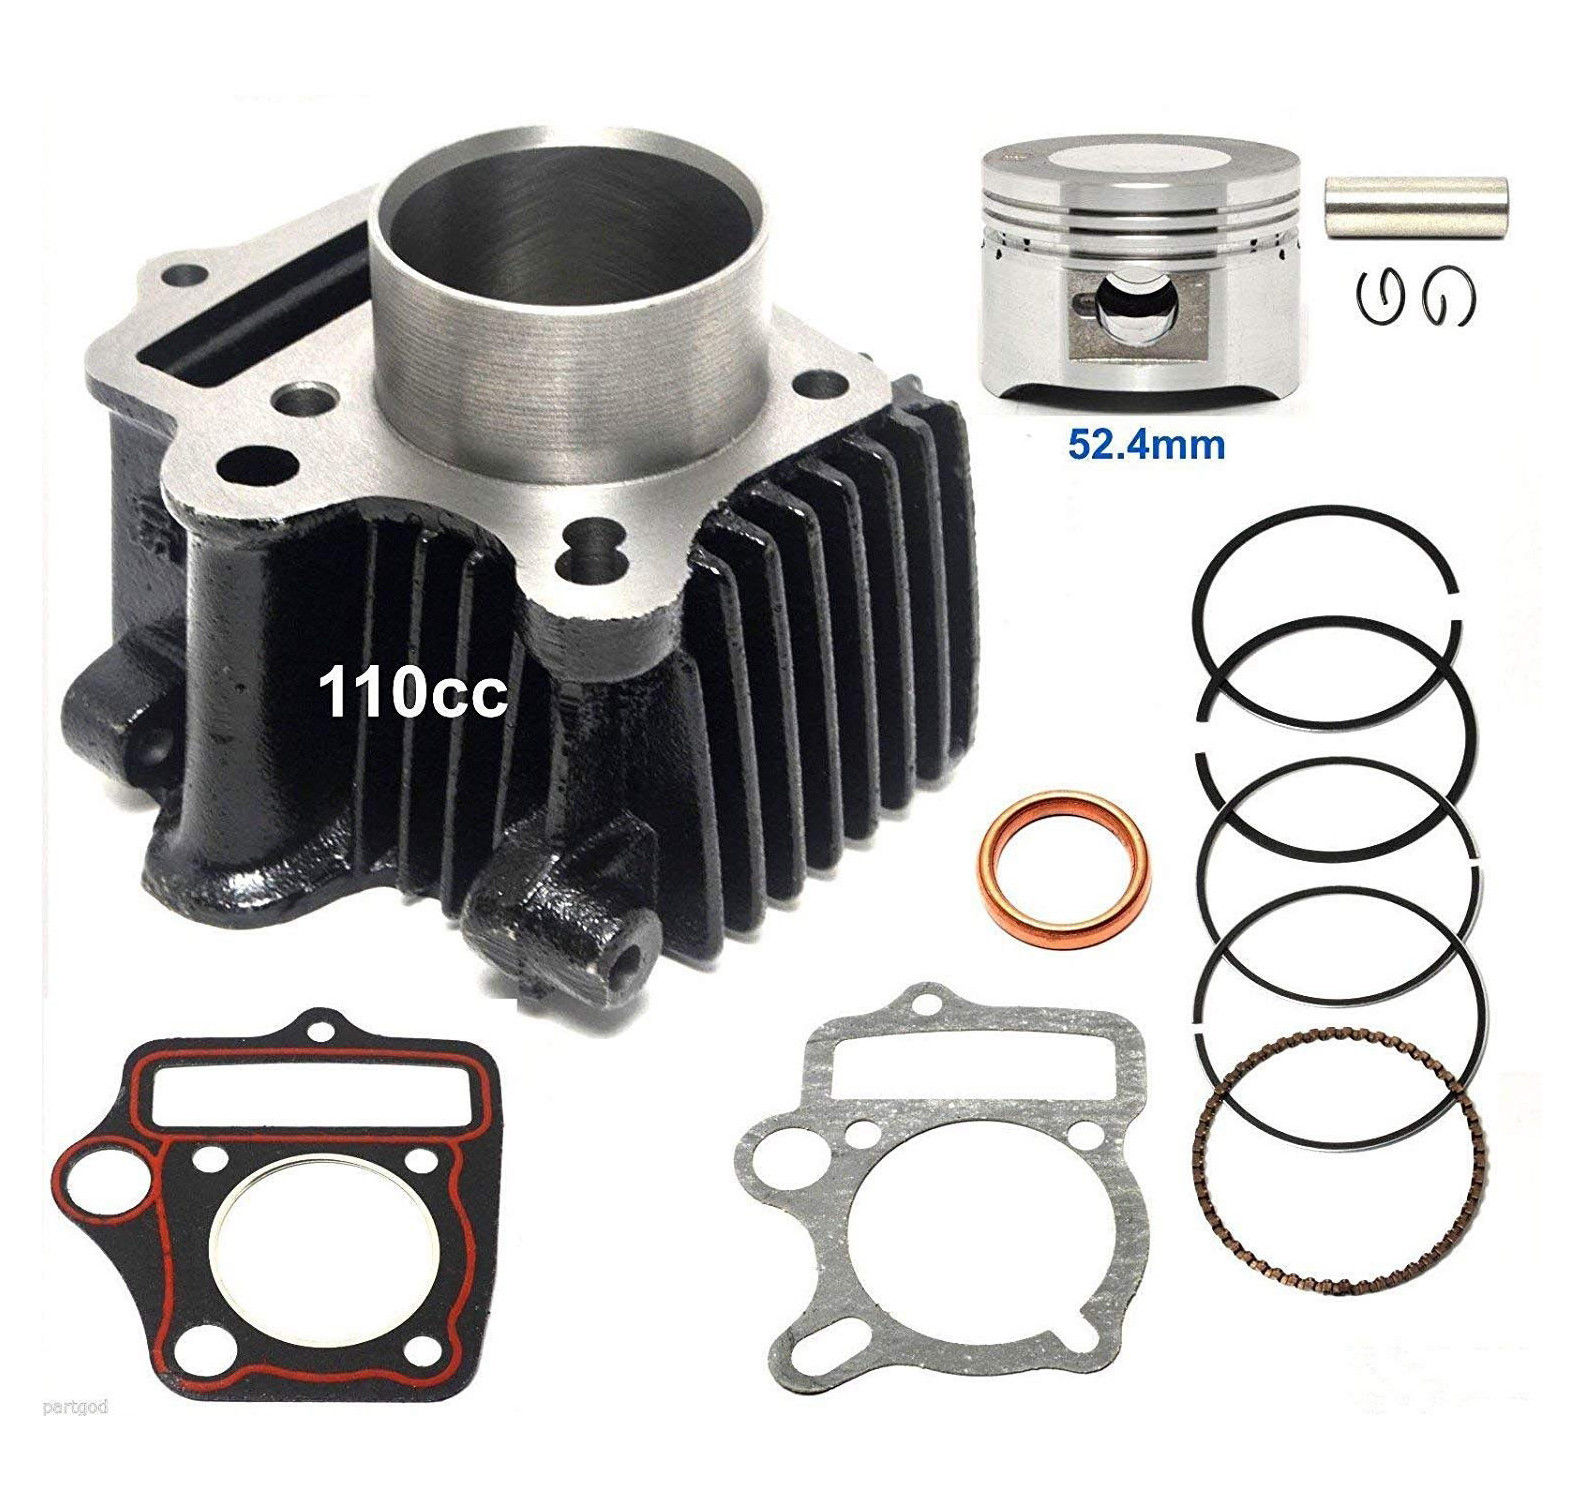 sunl atv fuel filter cylinder rebuild kit for chinese 110cc 1p52fmh roketa ssr sunl atv  cylinder rebuild kit for chinese 110cc